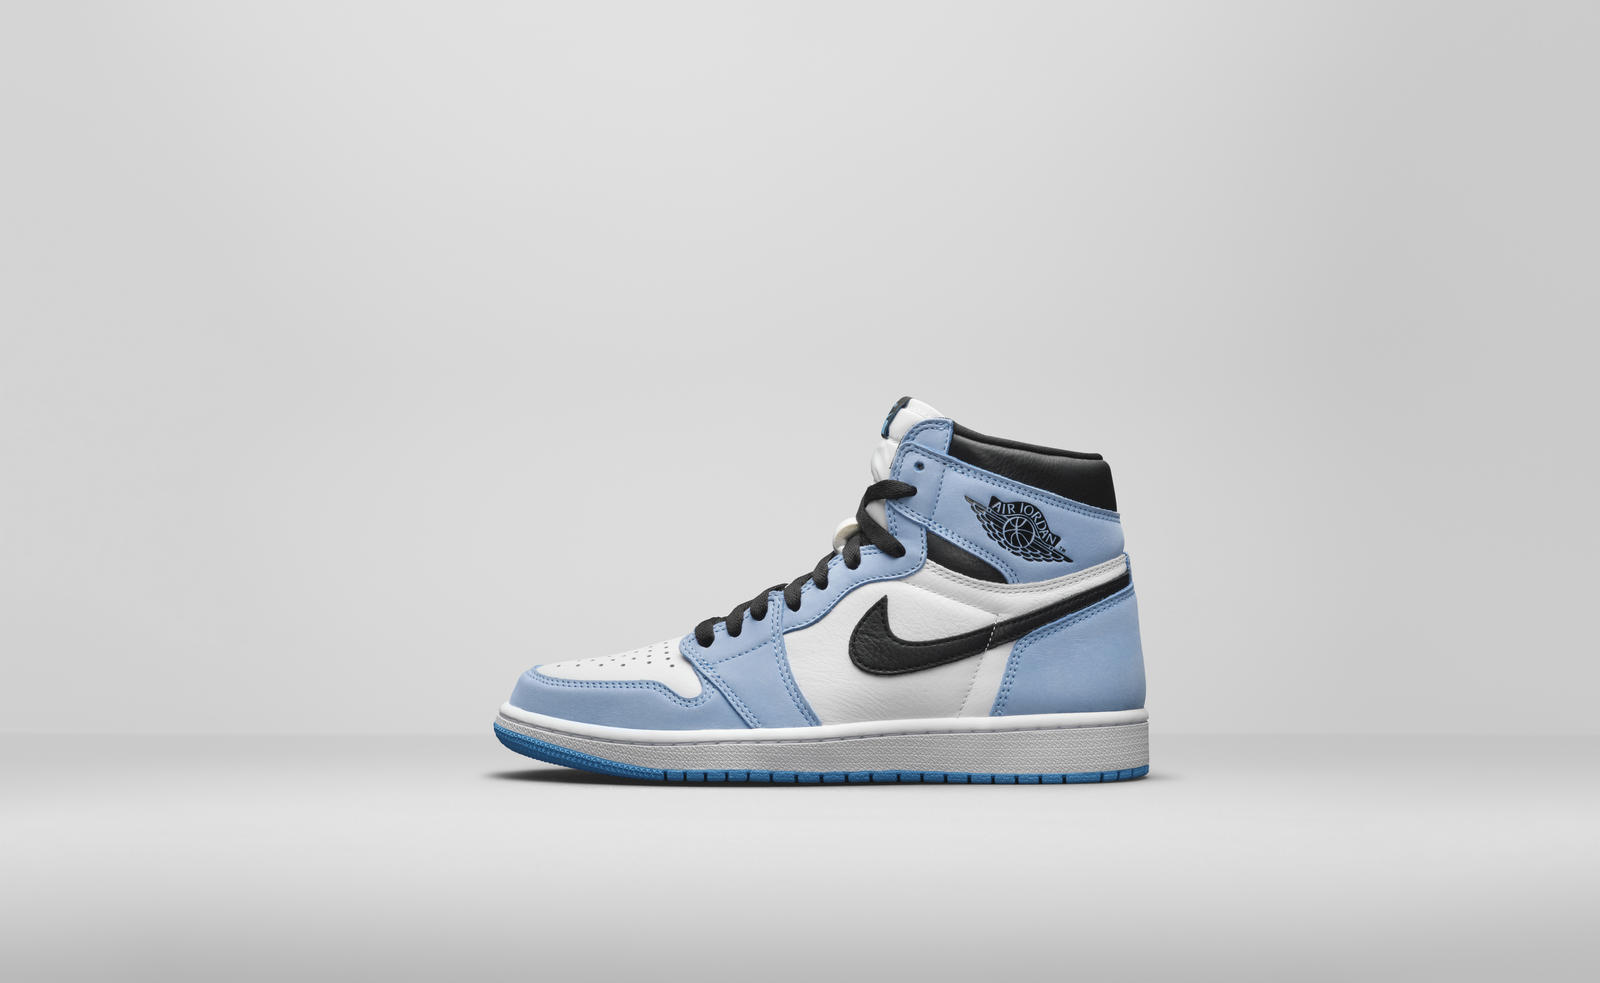 Air Jordan I Retro HI OG